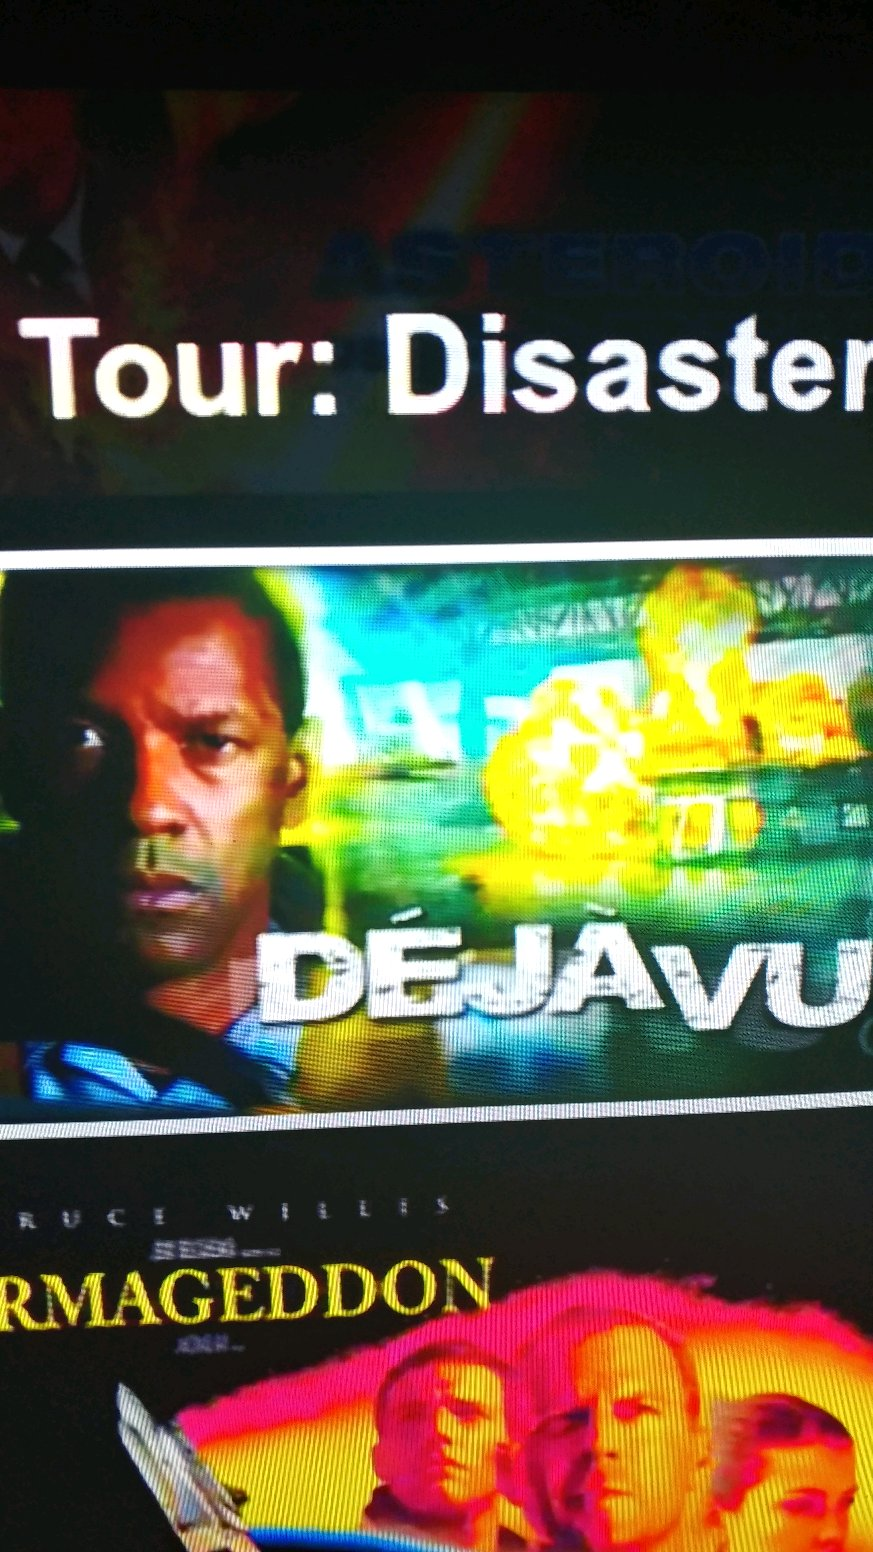 Was scrolling through Netflix and seen this 😂